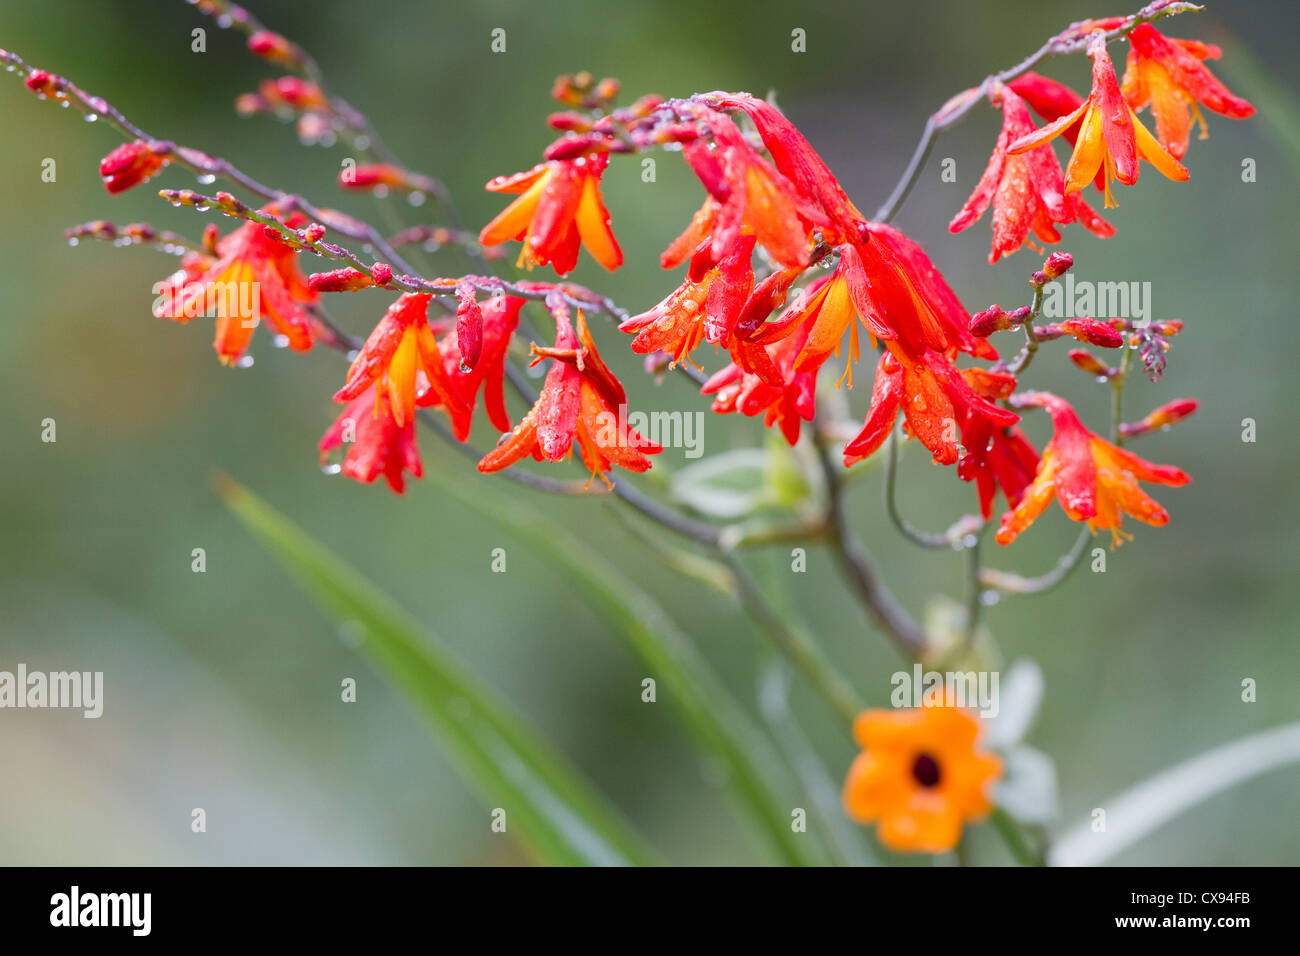 Flowers covered with morning dew in Savege area, Costa Rica. - Stock Image